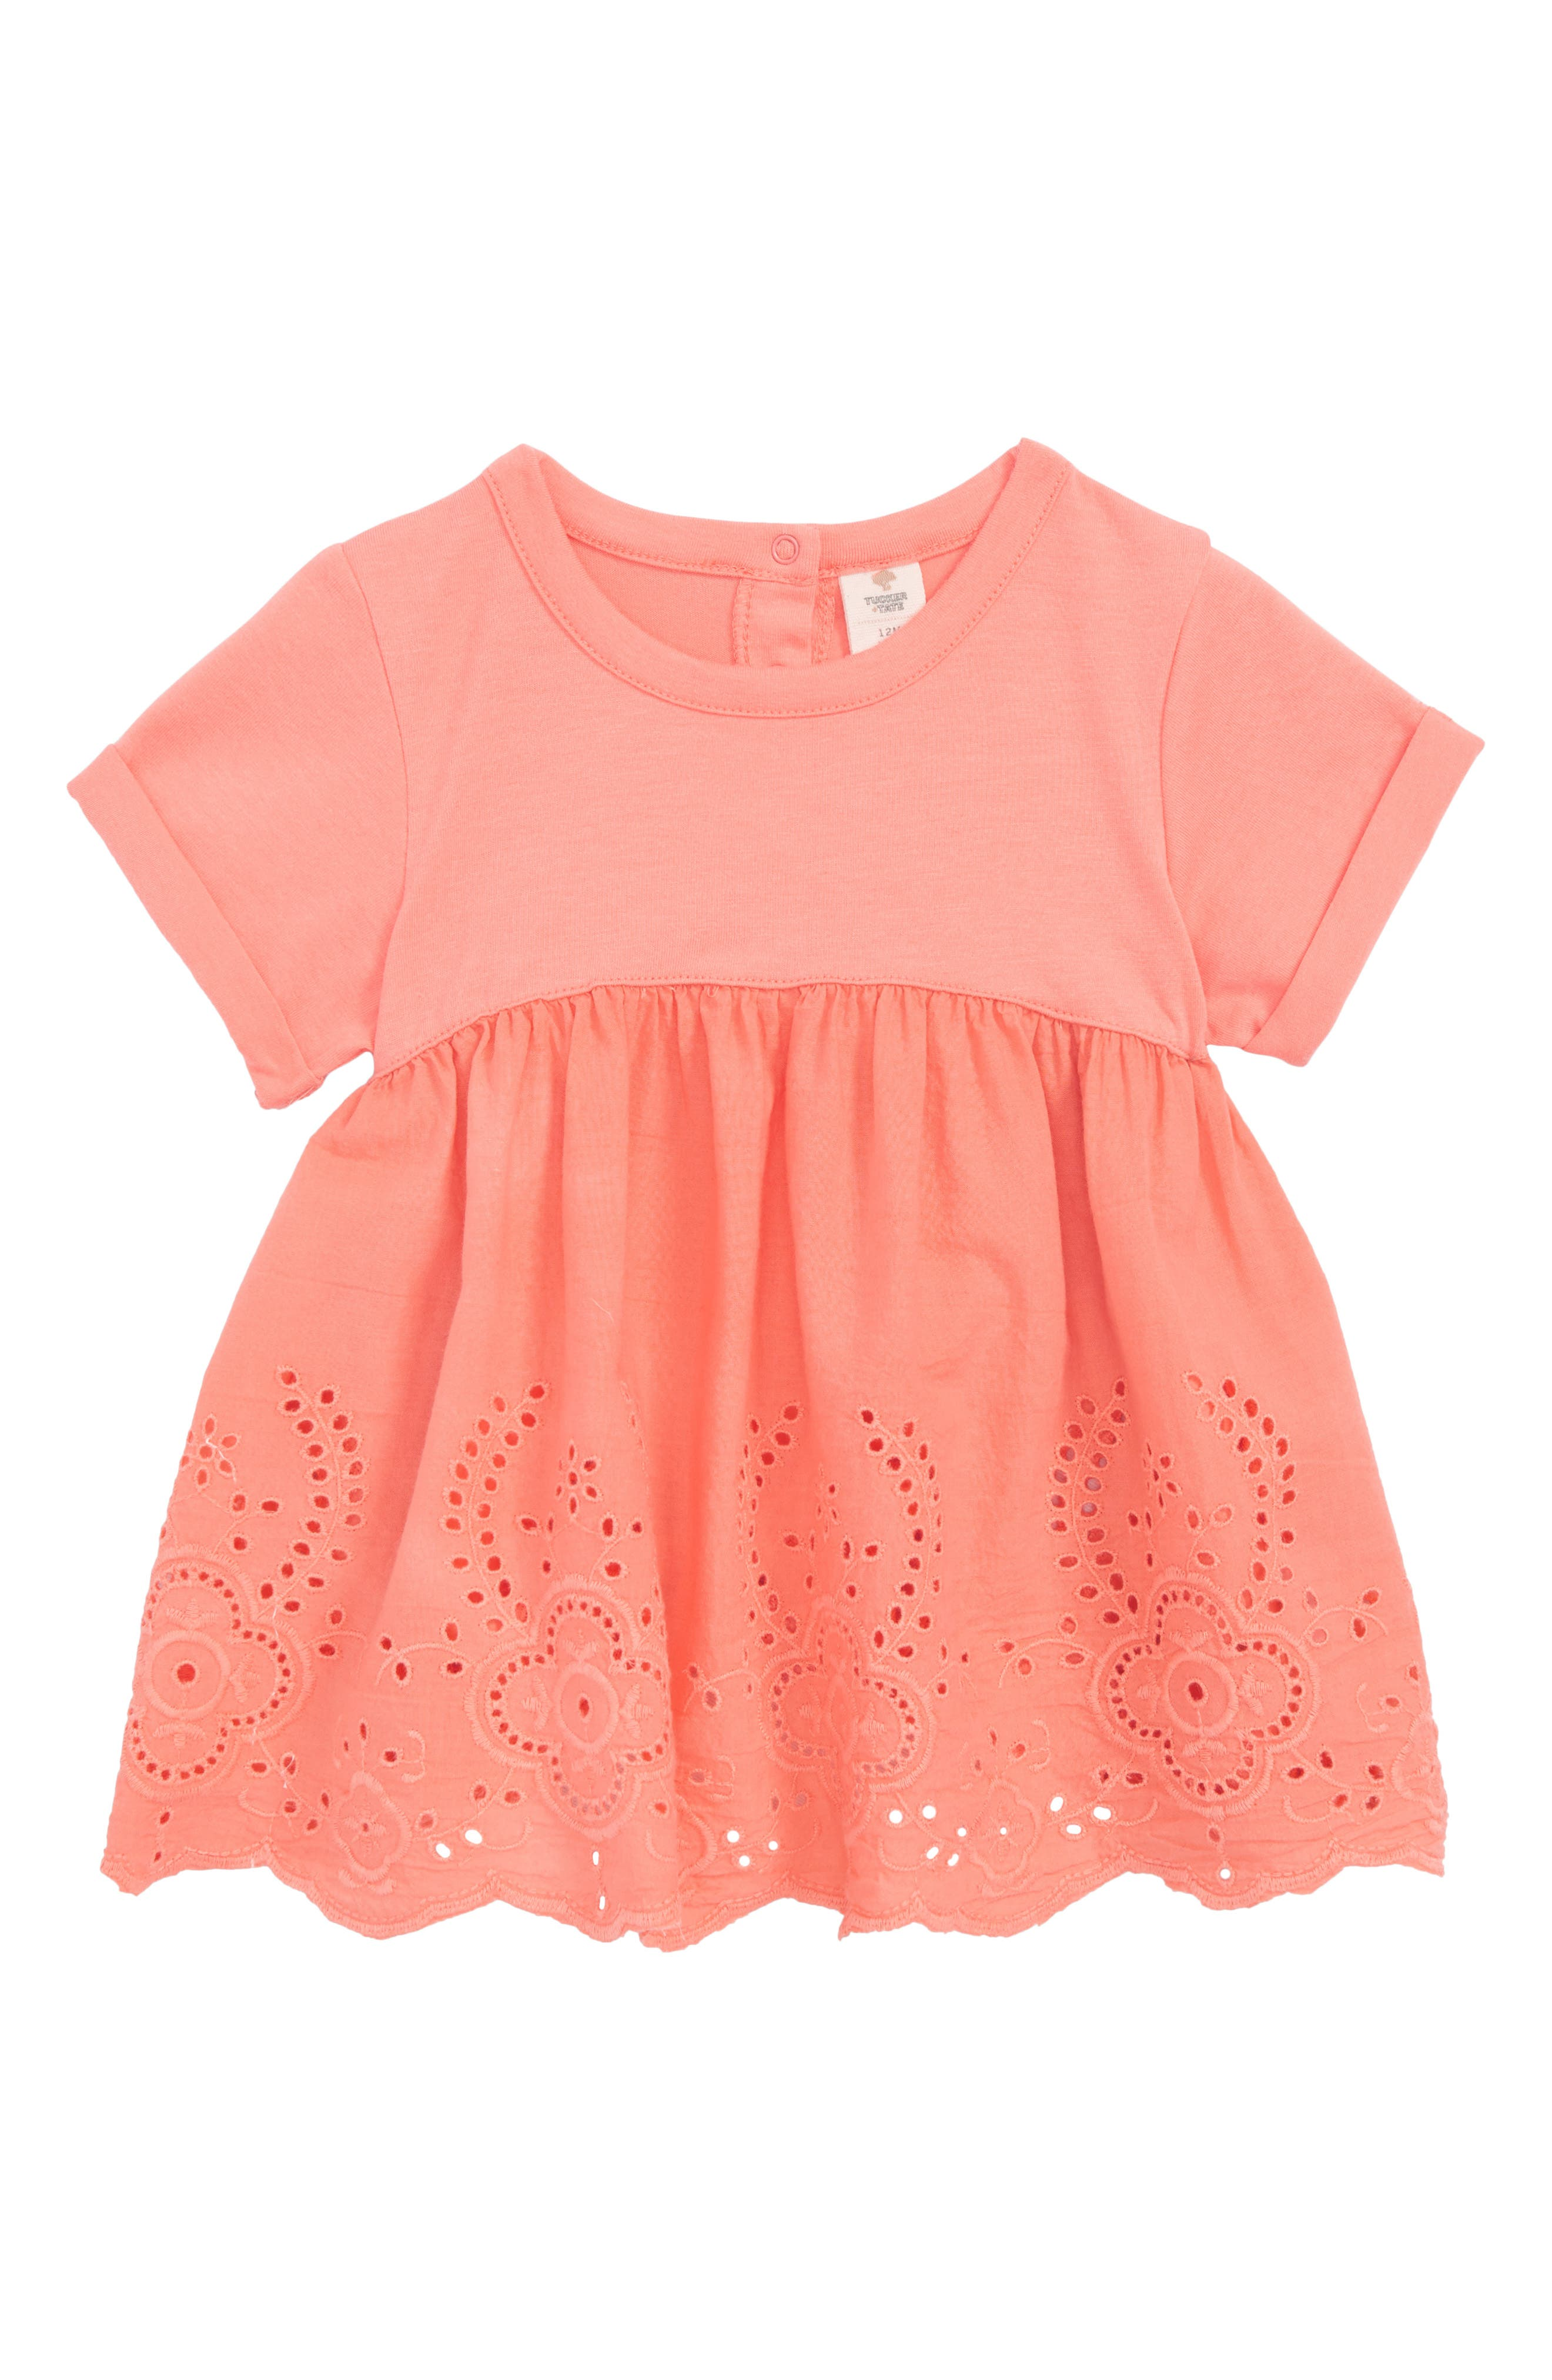 Eyelet Embroidered Top,                             Main thumbnail 1, color,                             955